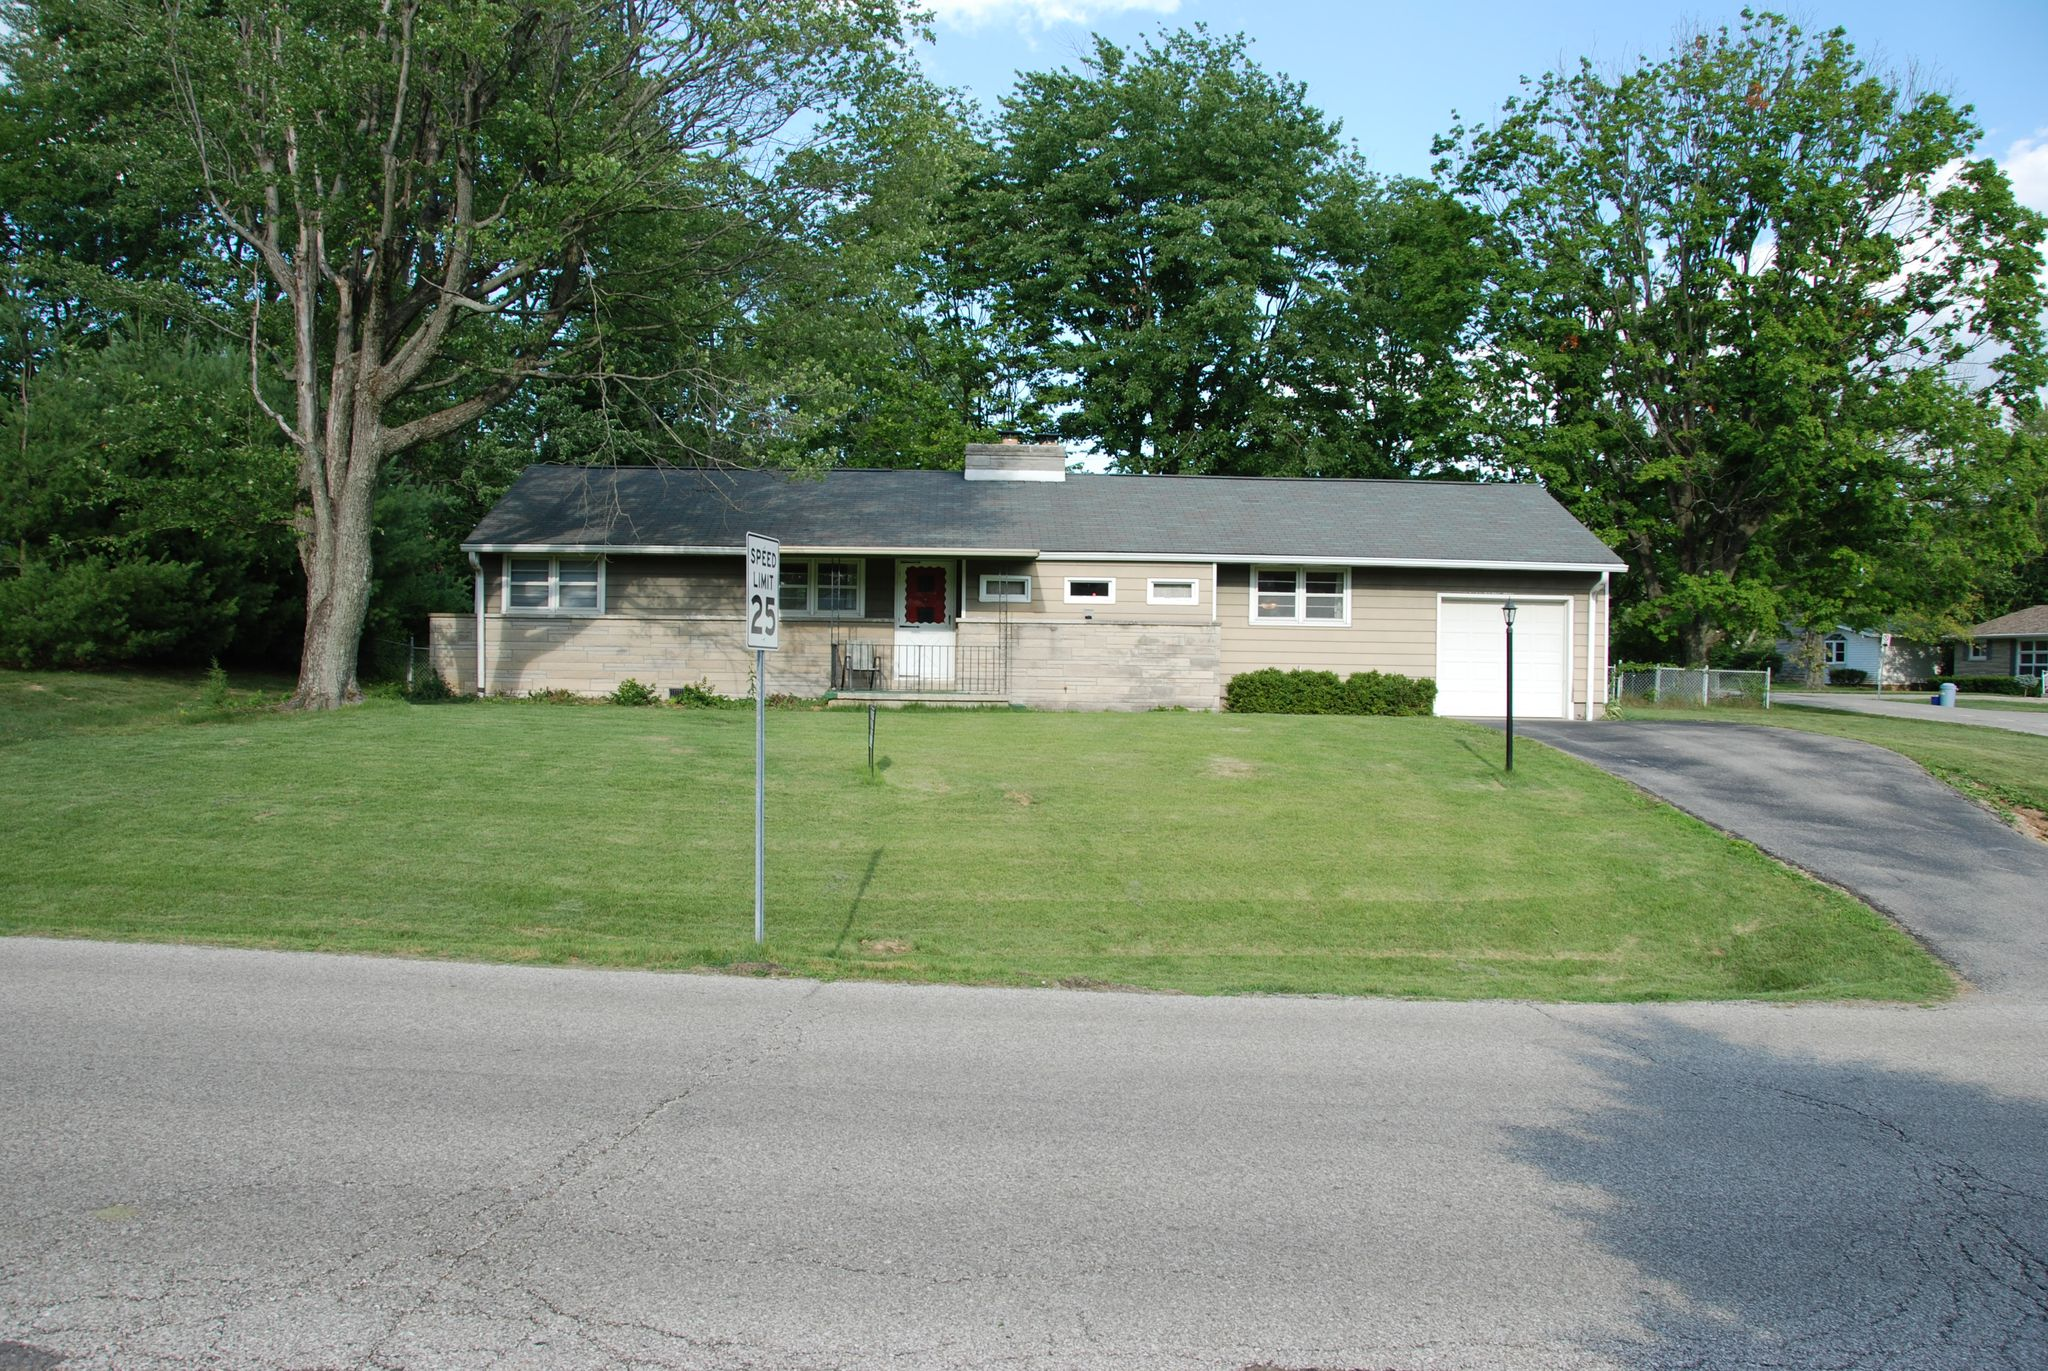 144 n hillsdale dr for sale bloomington in trulia